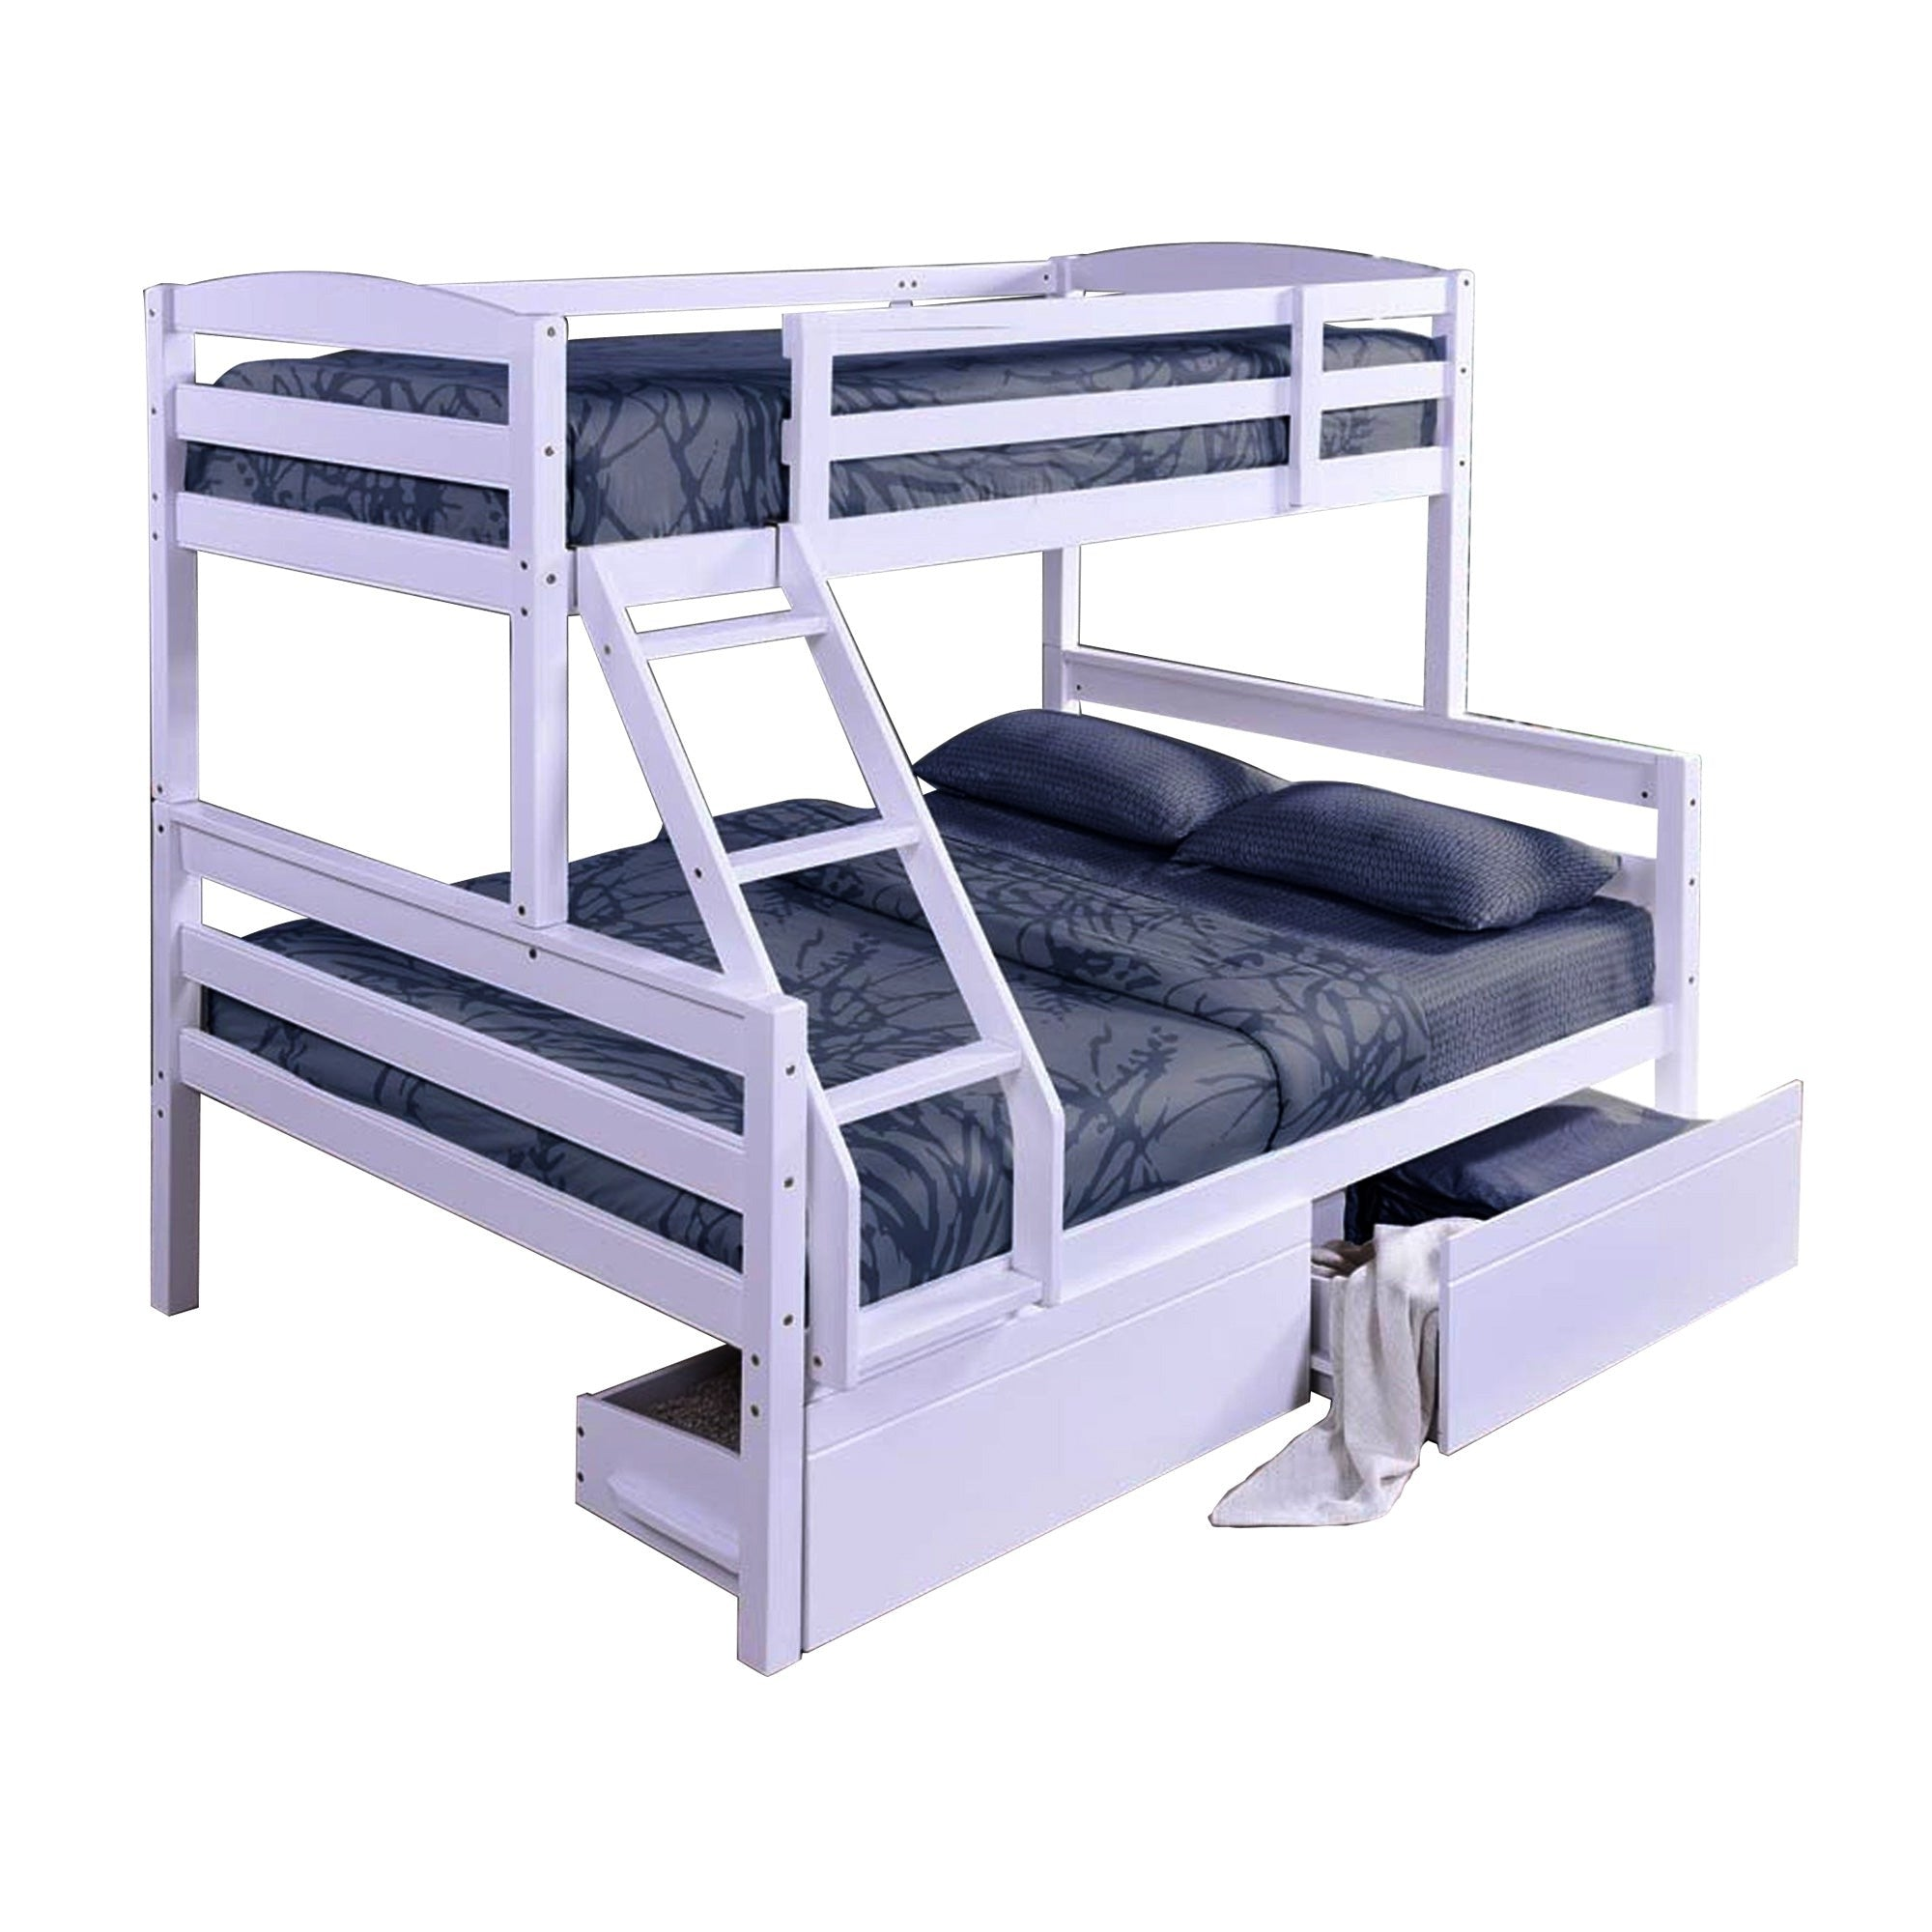 Charlie Duo Bunk Bed Frame (Single & Double)